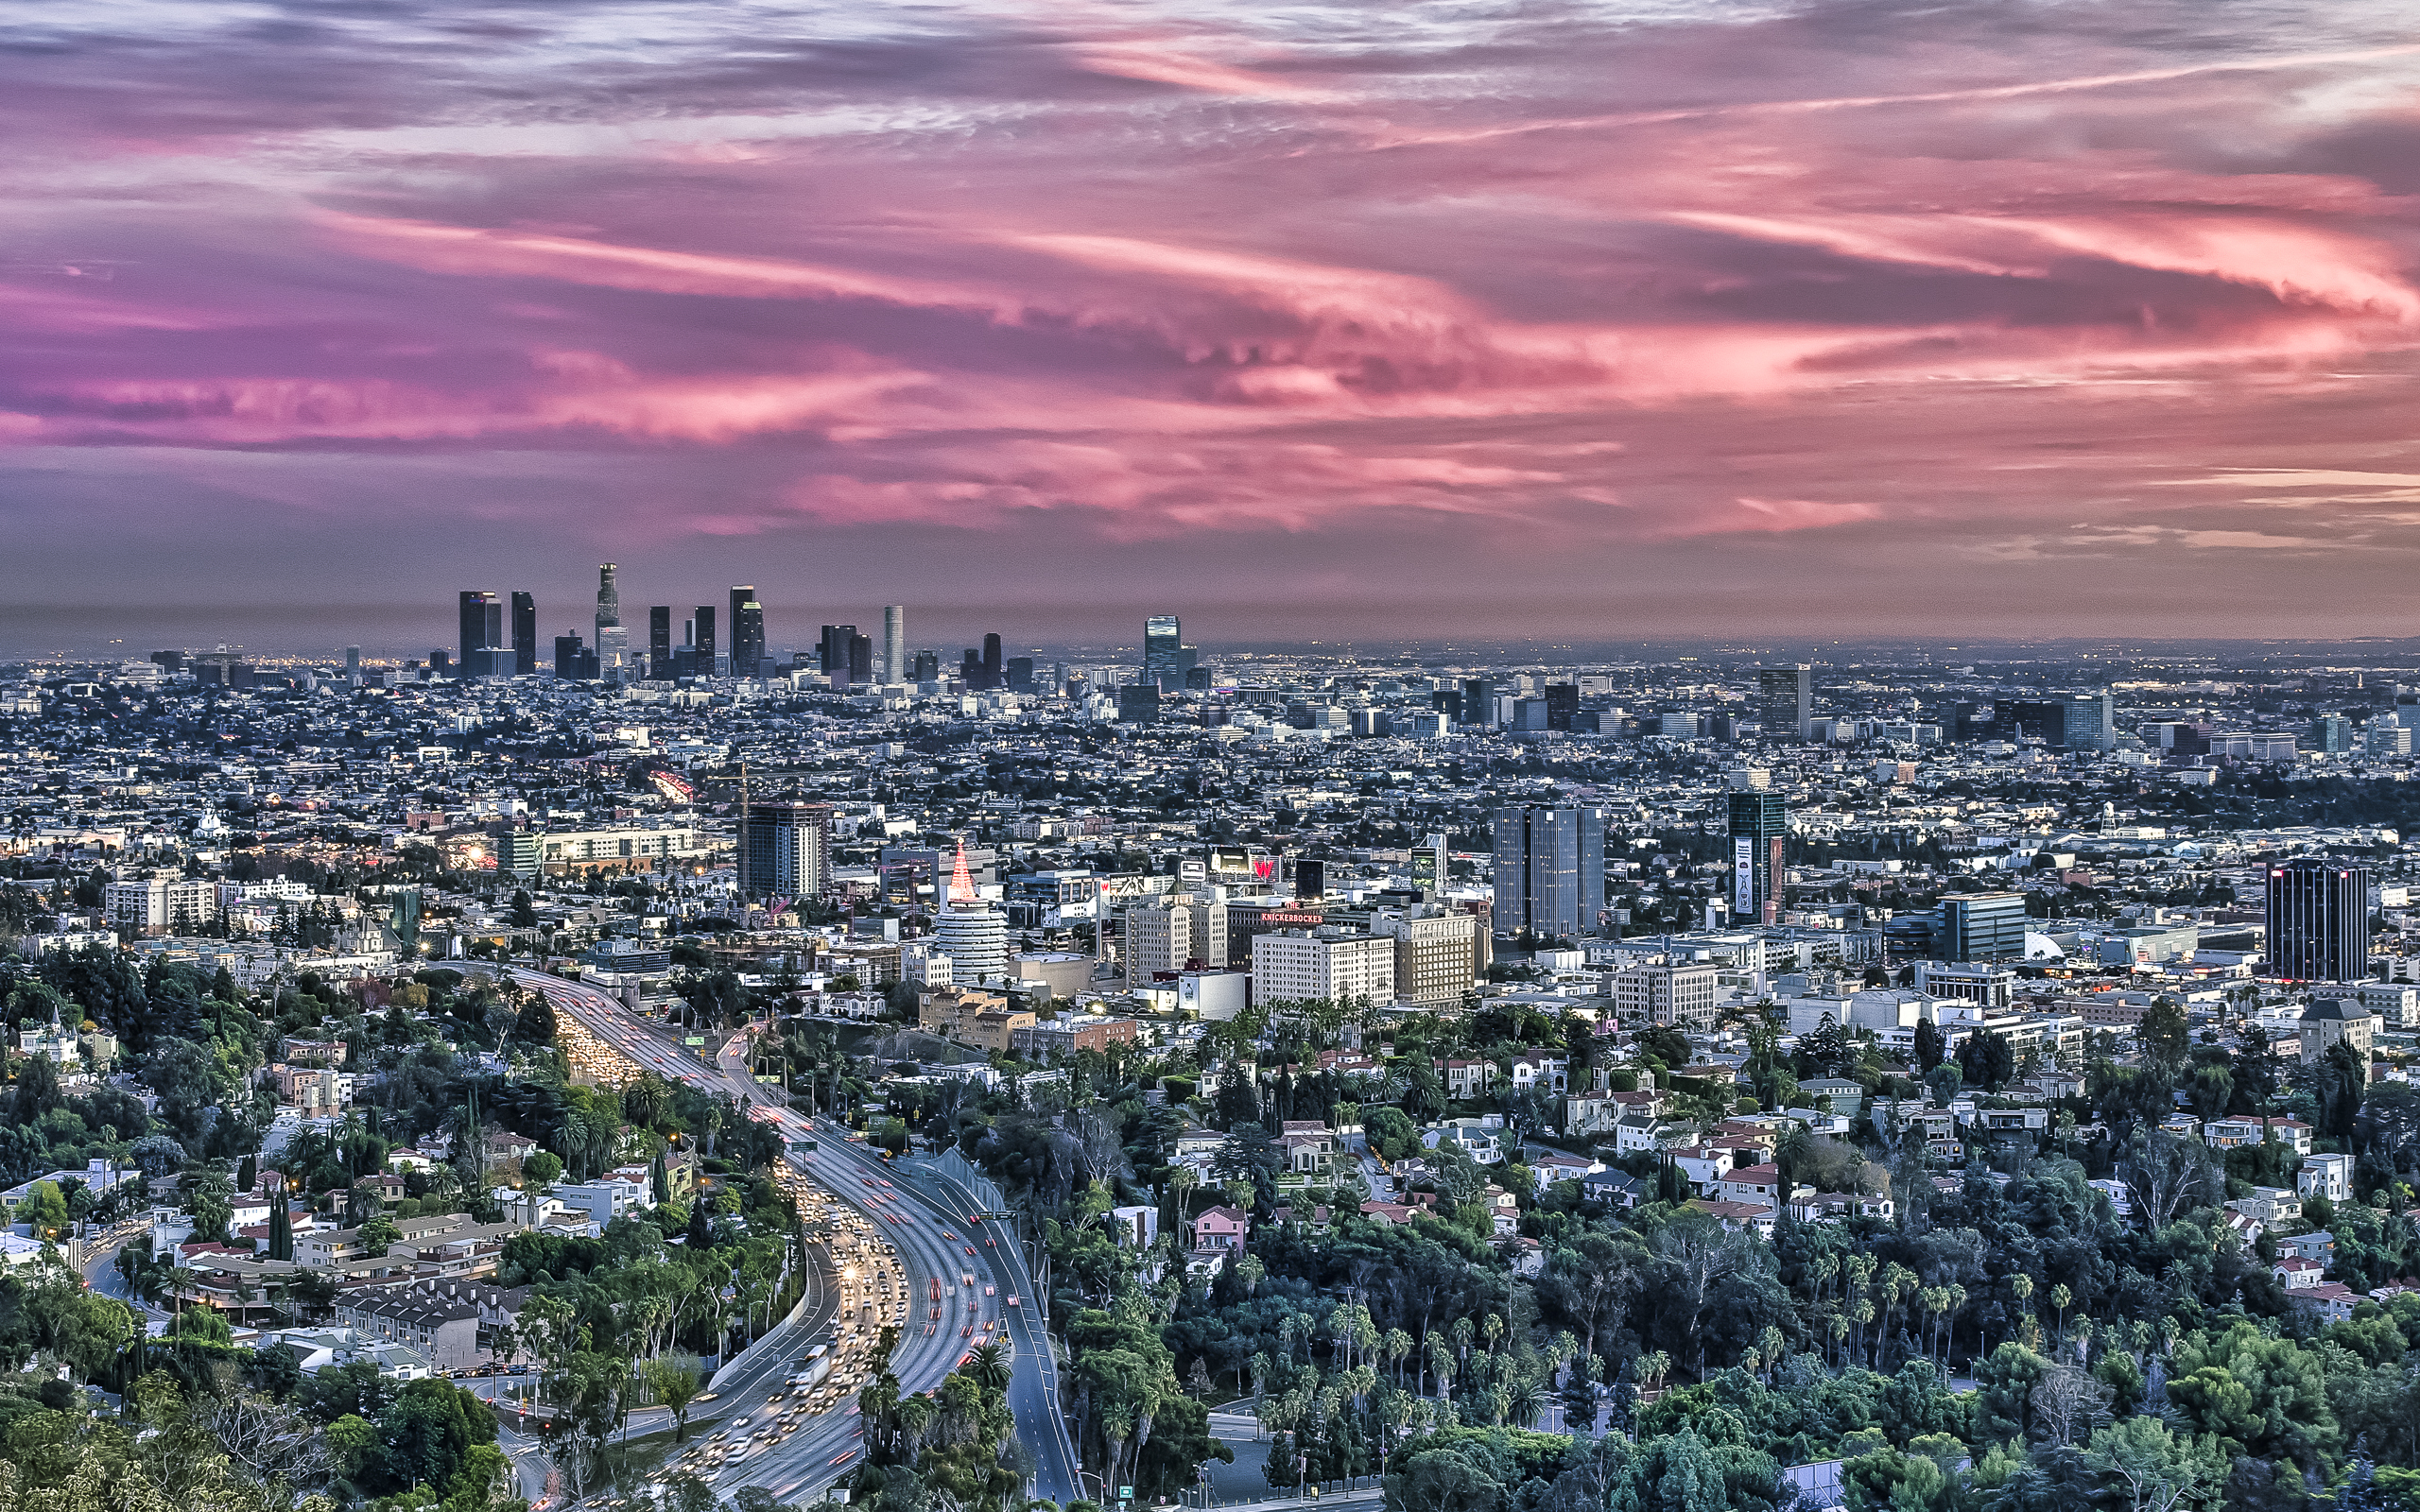 Los Angeles From Hollywood Bowl Overlook By Sarmu - Los Angeles Overlook , HD Wallpaper & Backgrounds